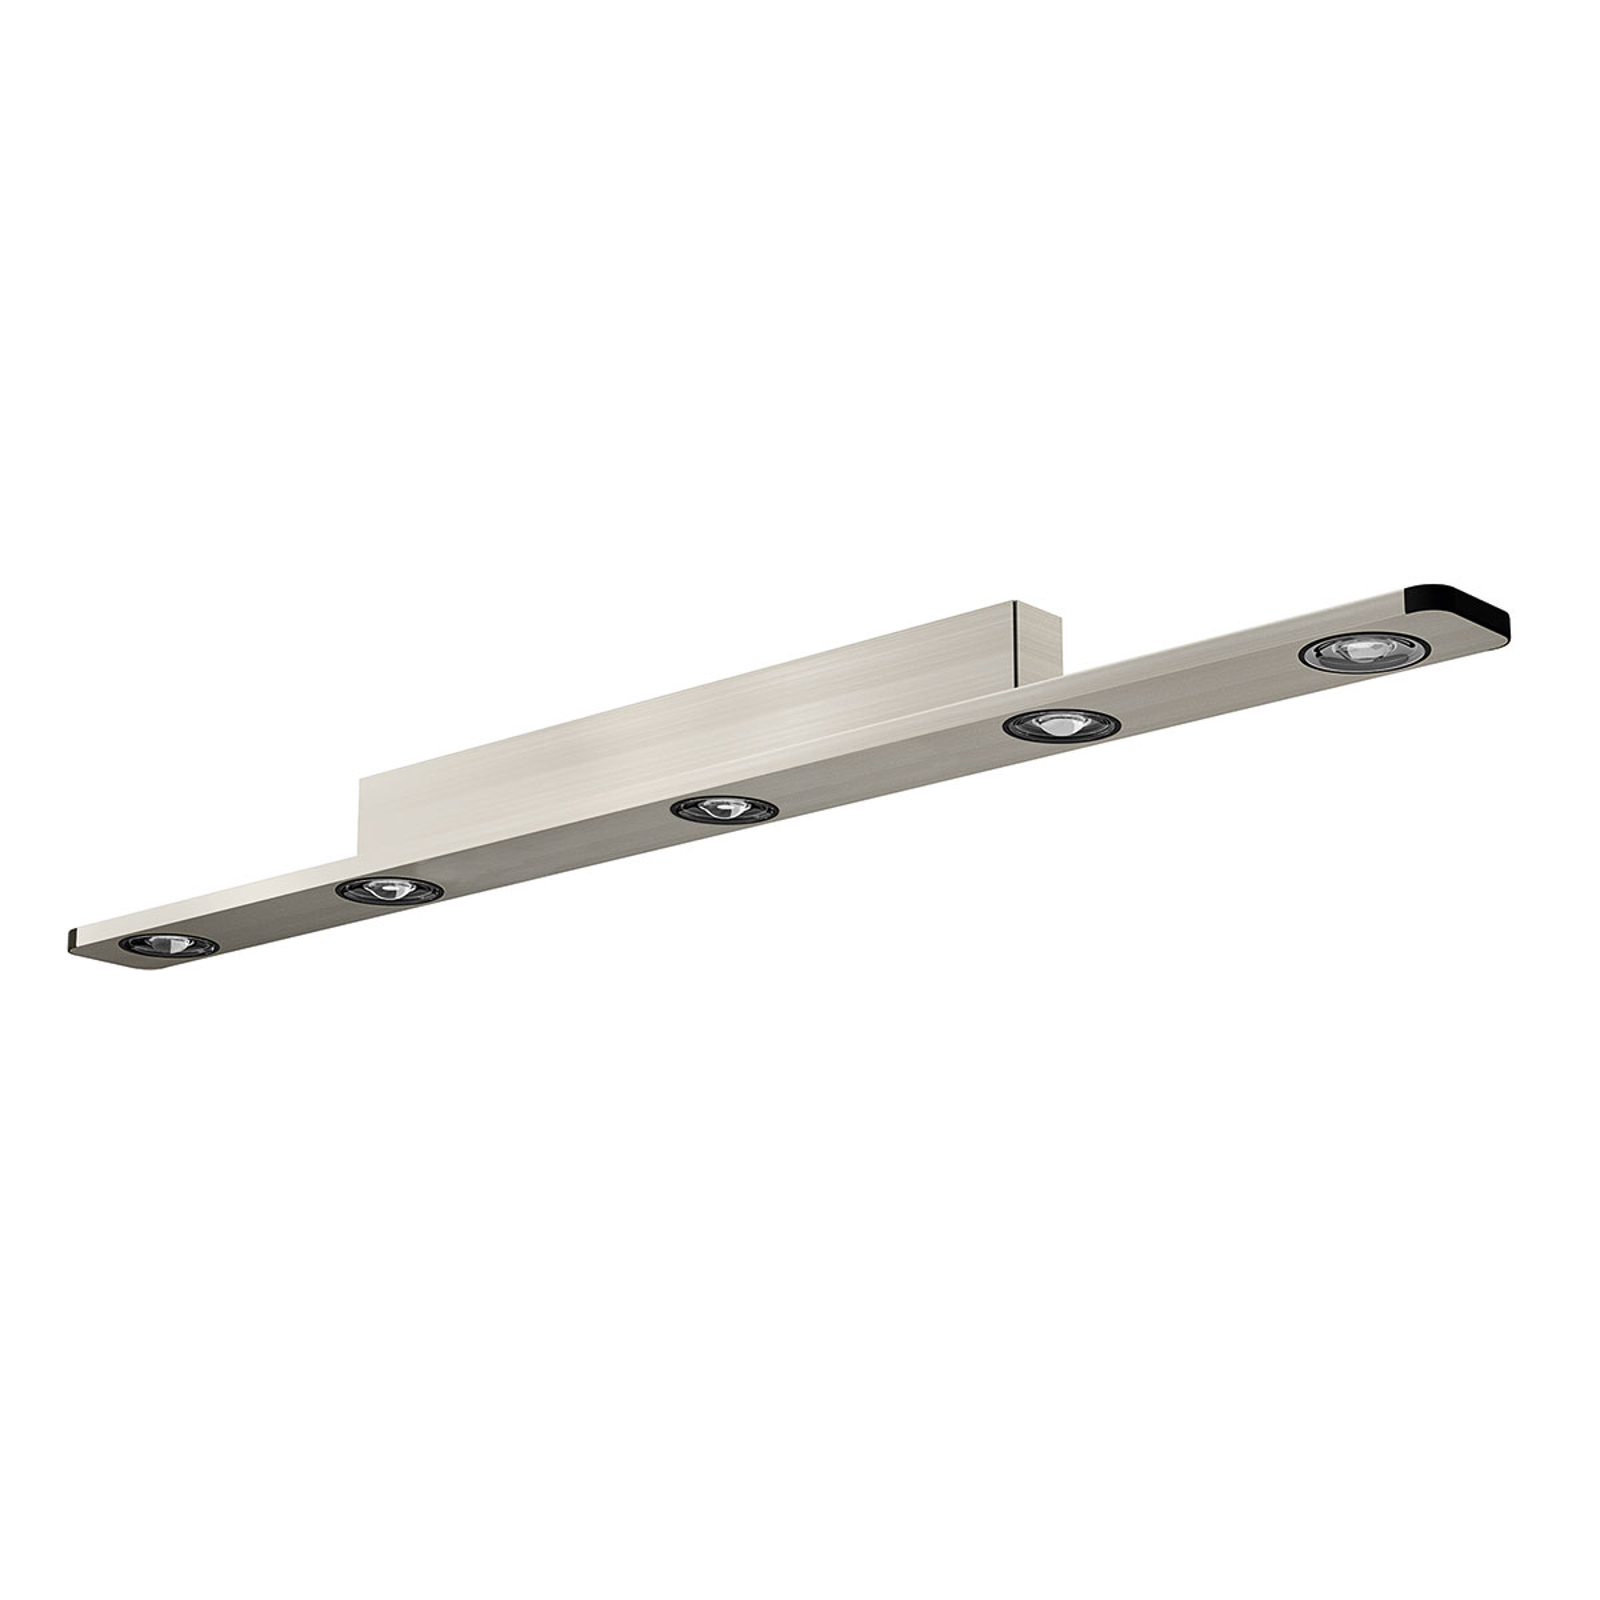 LED-Deckenleuchte Light Wave, dimmbar, 140 cm